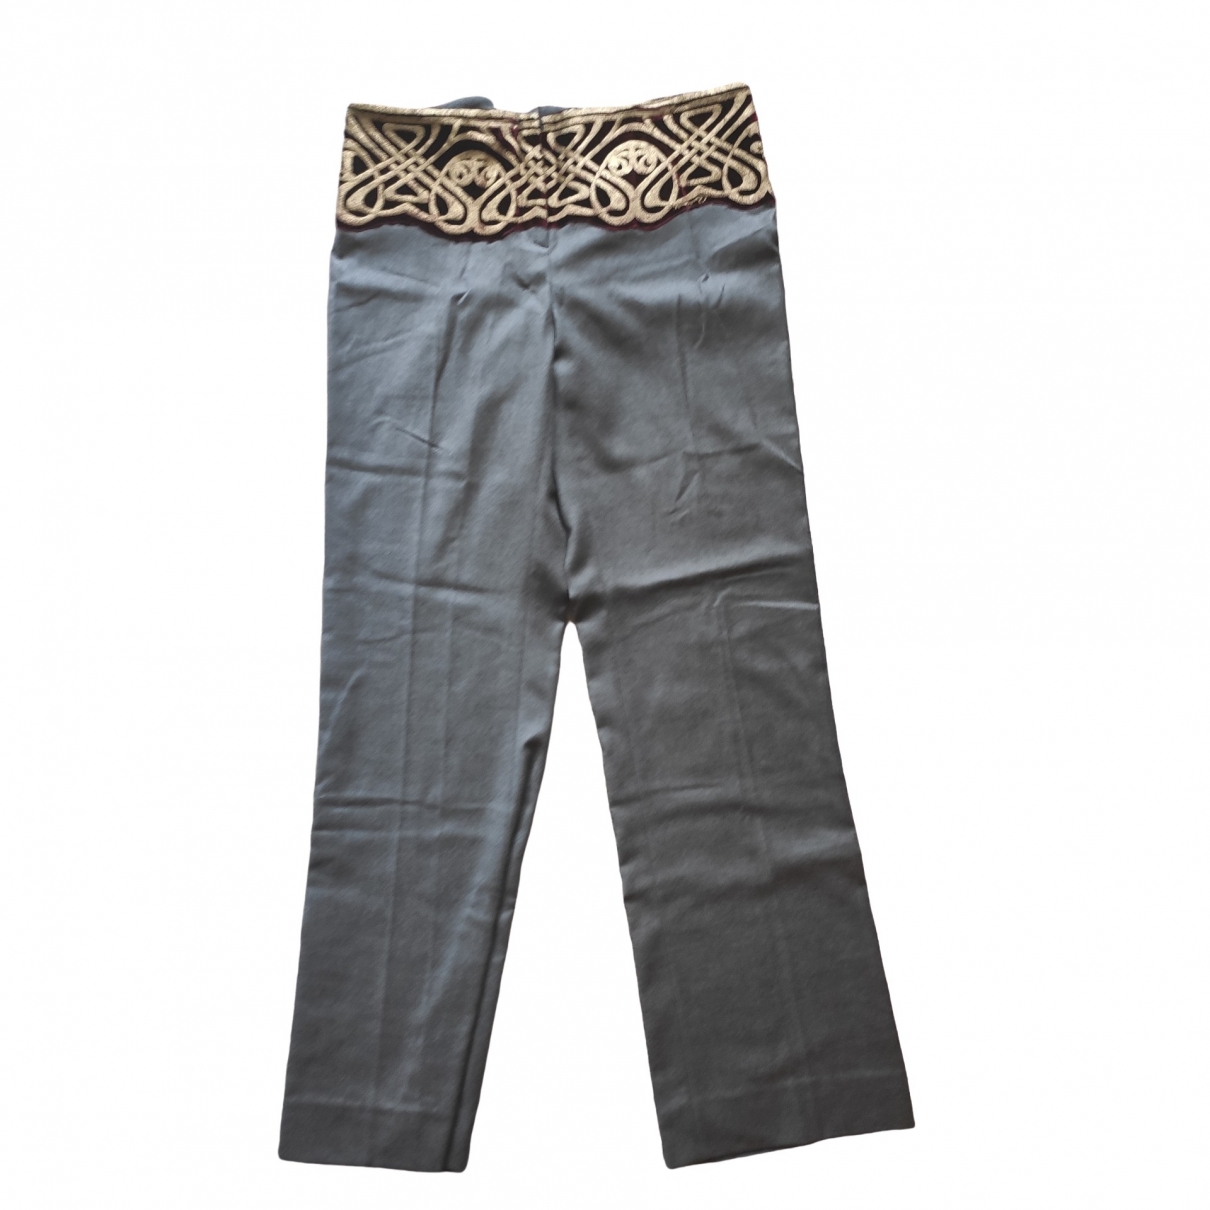 Roberto Cavalli \N Grey Denim - Jeans Trousers for Women 46 FR